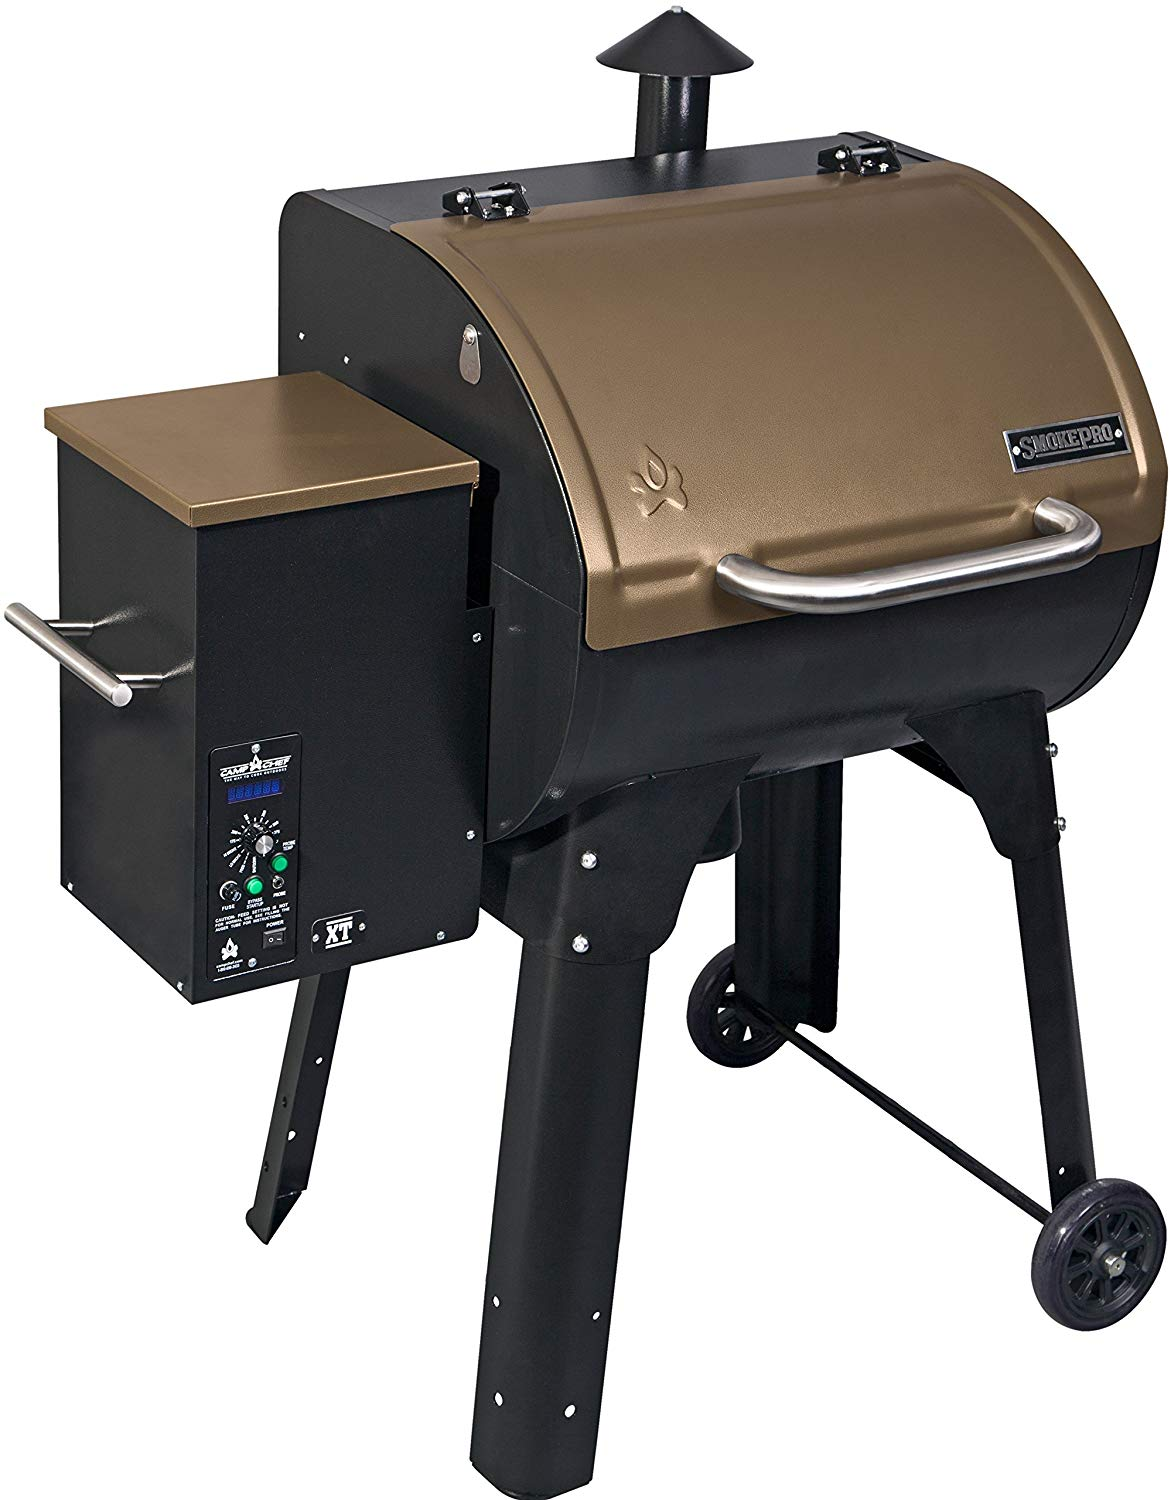 Camp Chef SmokePro XT Wood Pellet Grill Smoker